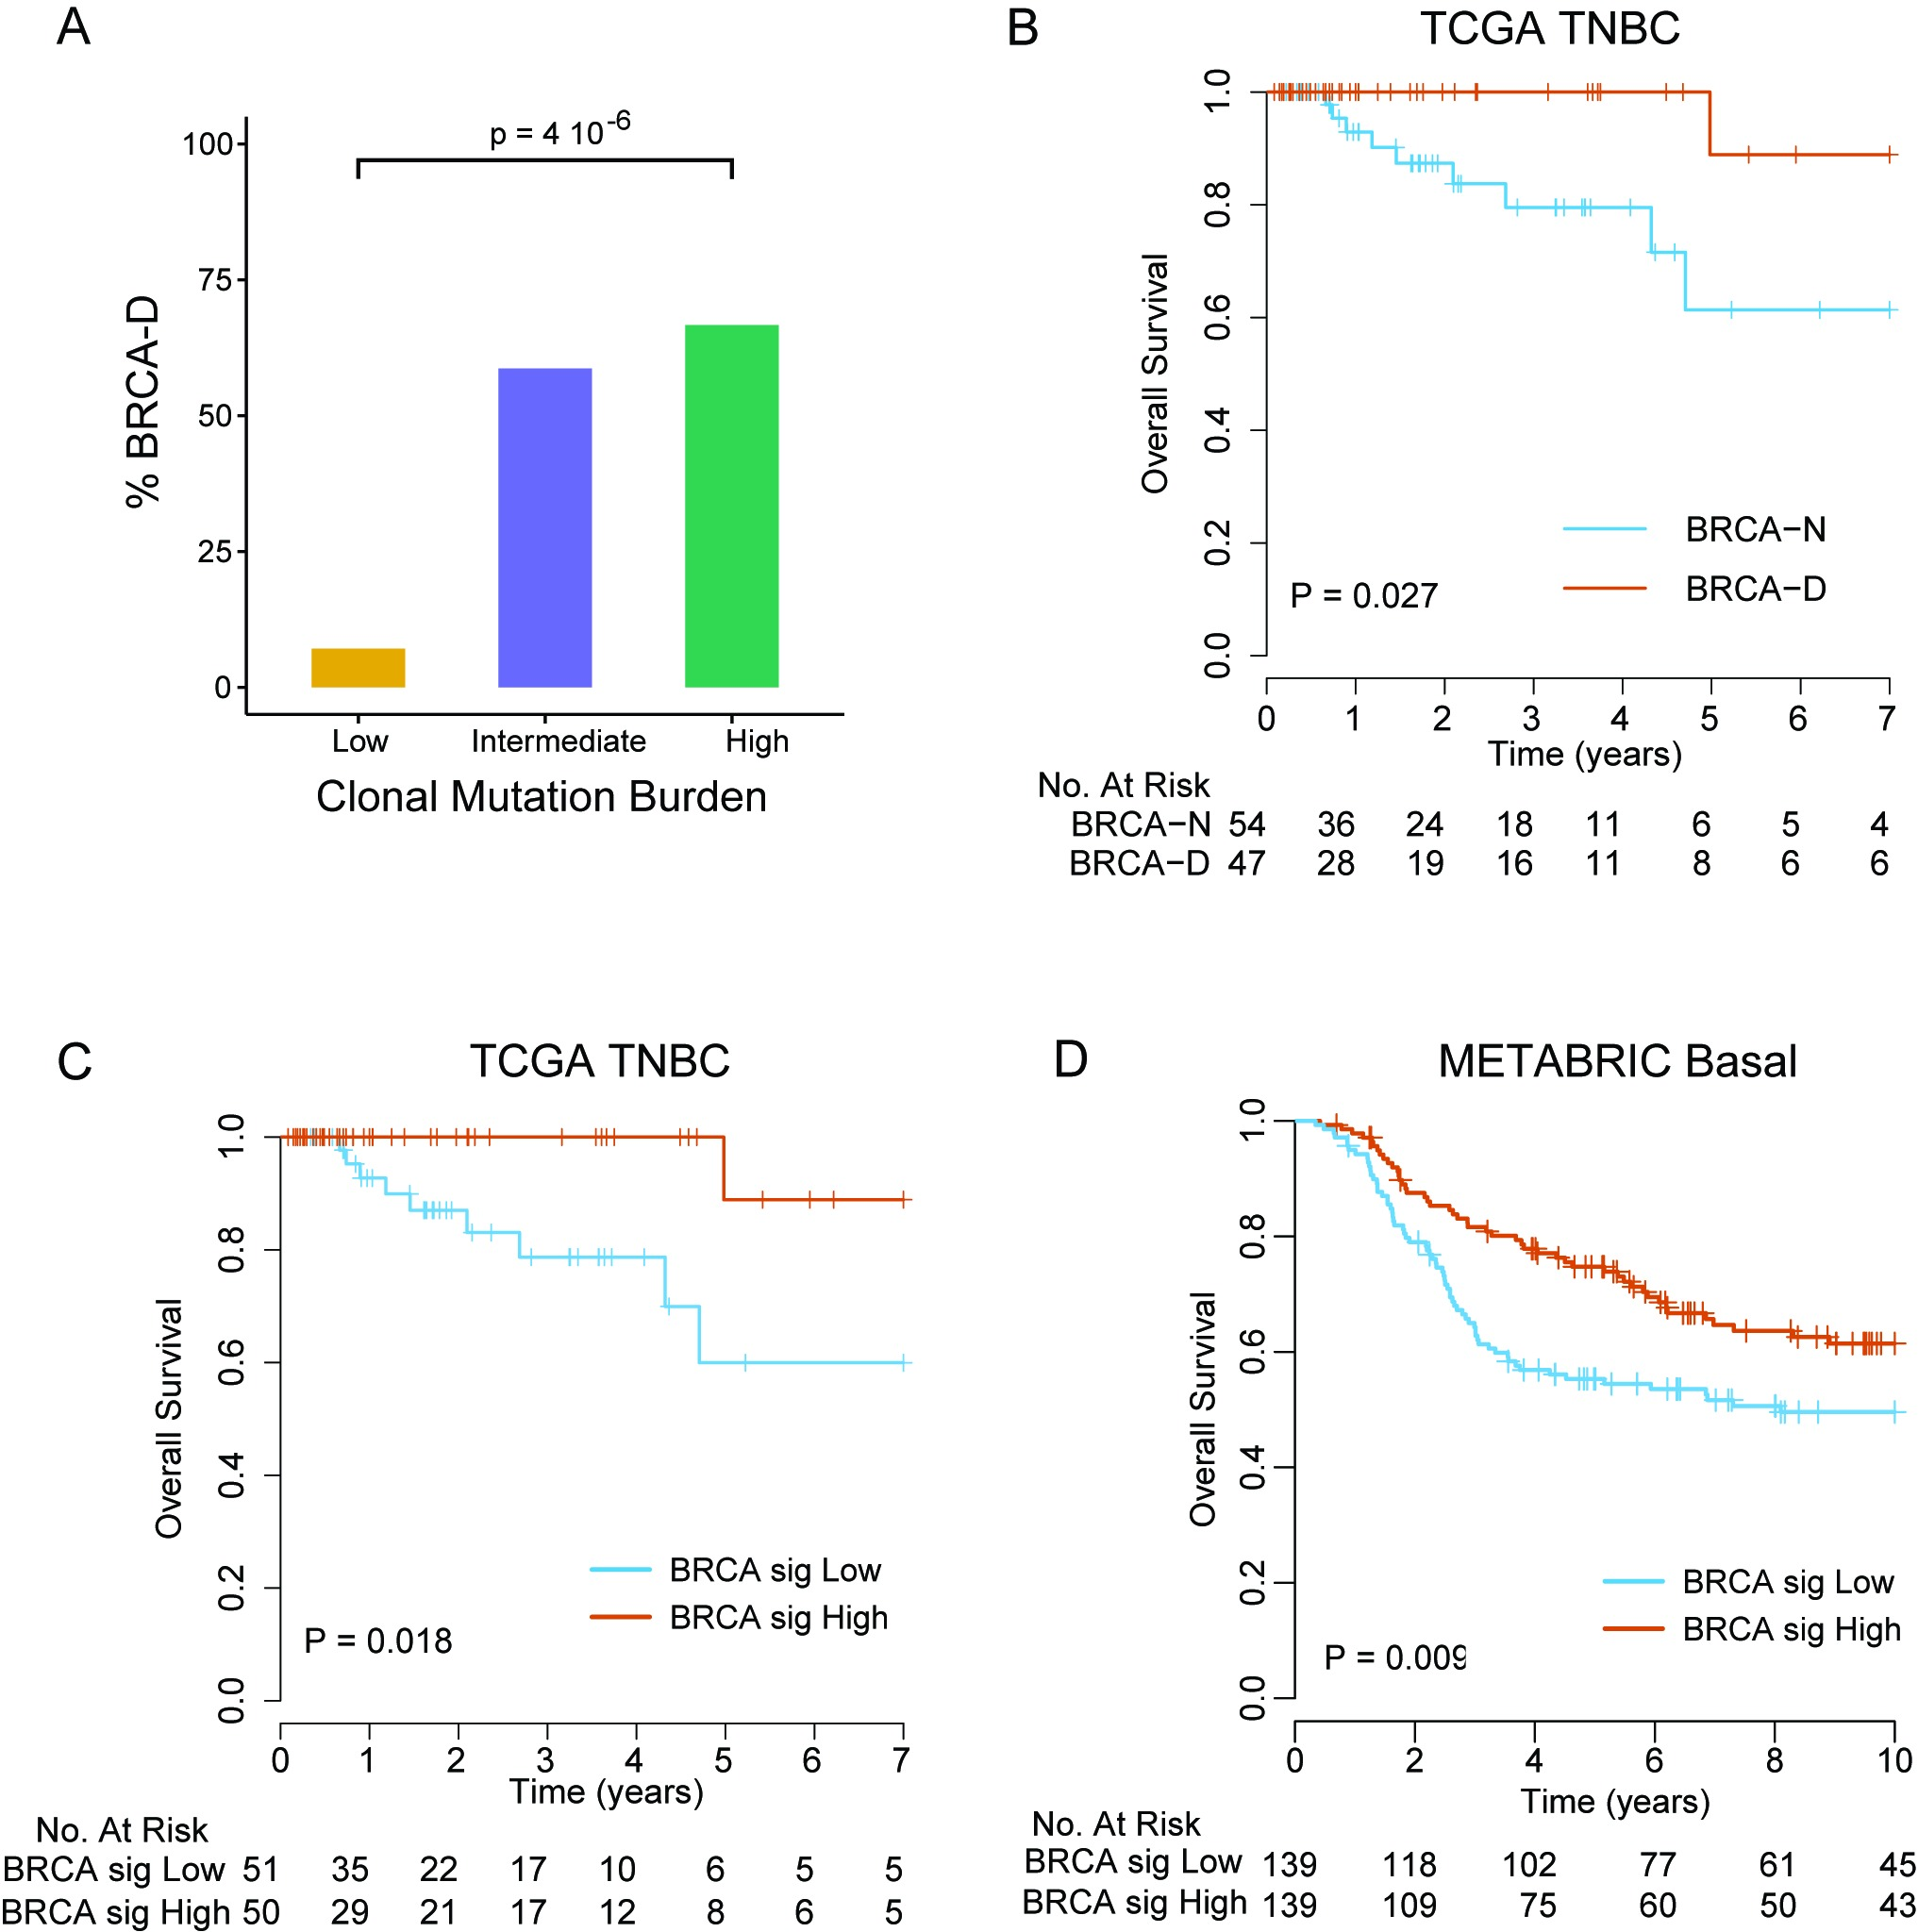 BRCA-deficient subtype signature identifies triple negative breast cancer patients with improved survival with anthracycline/taxane chemotherapy.